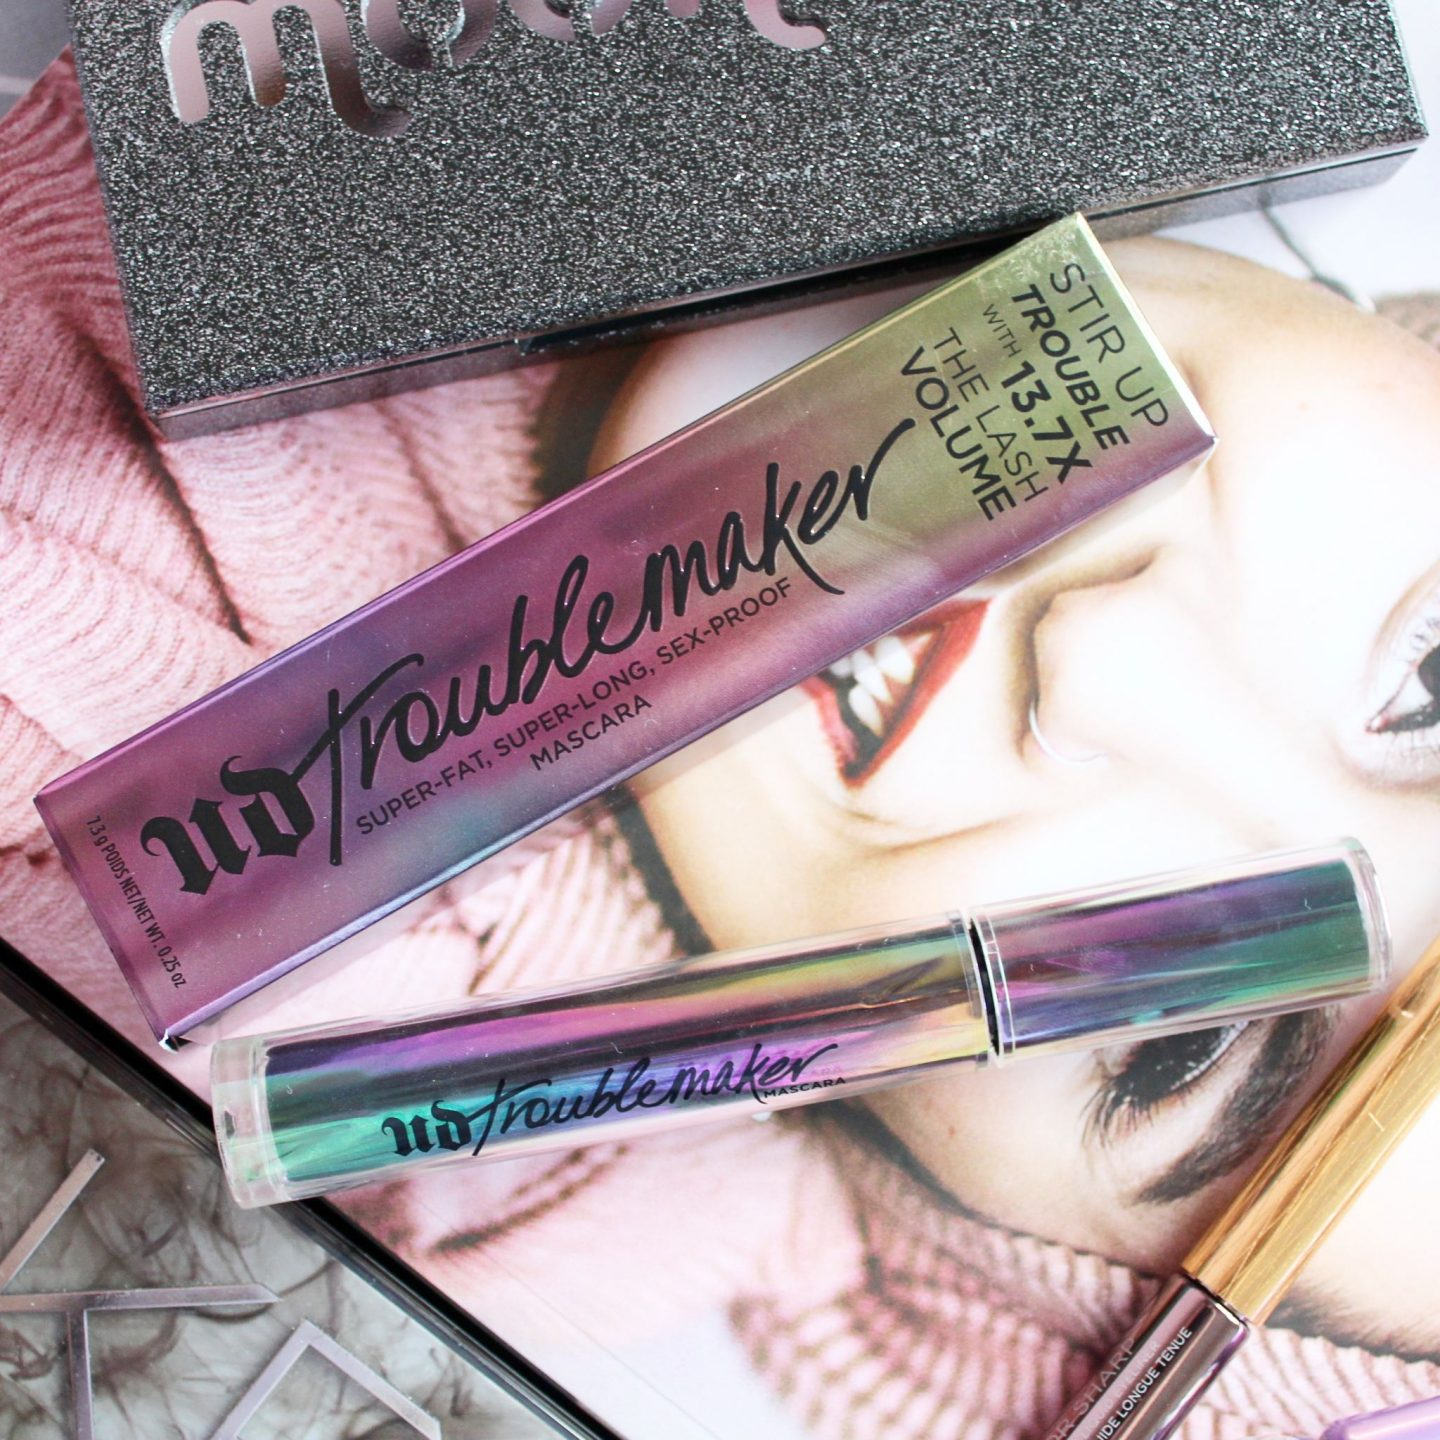 589a2537019 Urban Decay Troublemaker Mascara | Here Comes Trouble